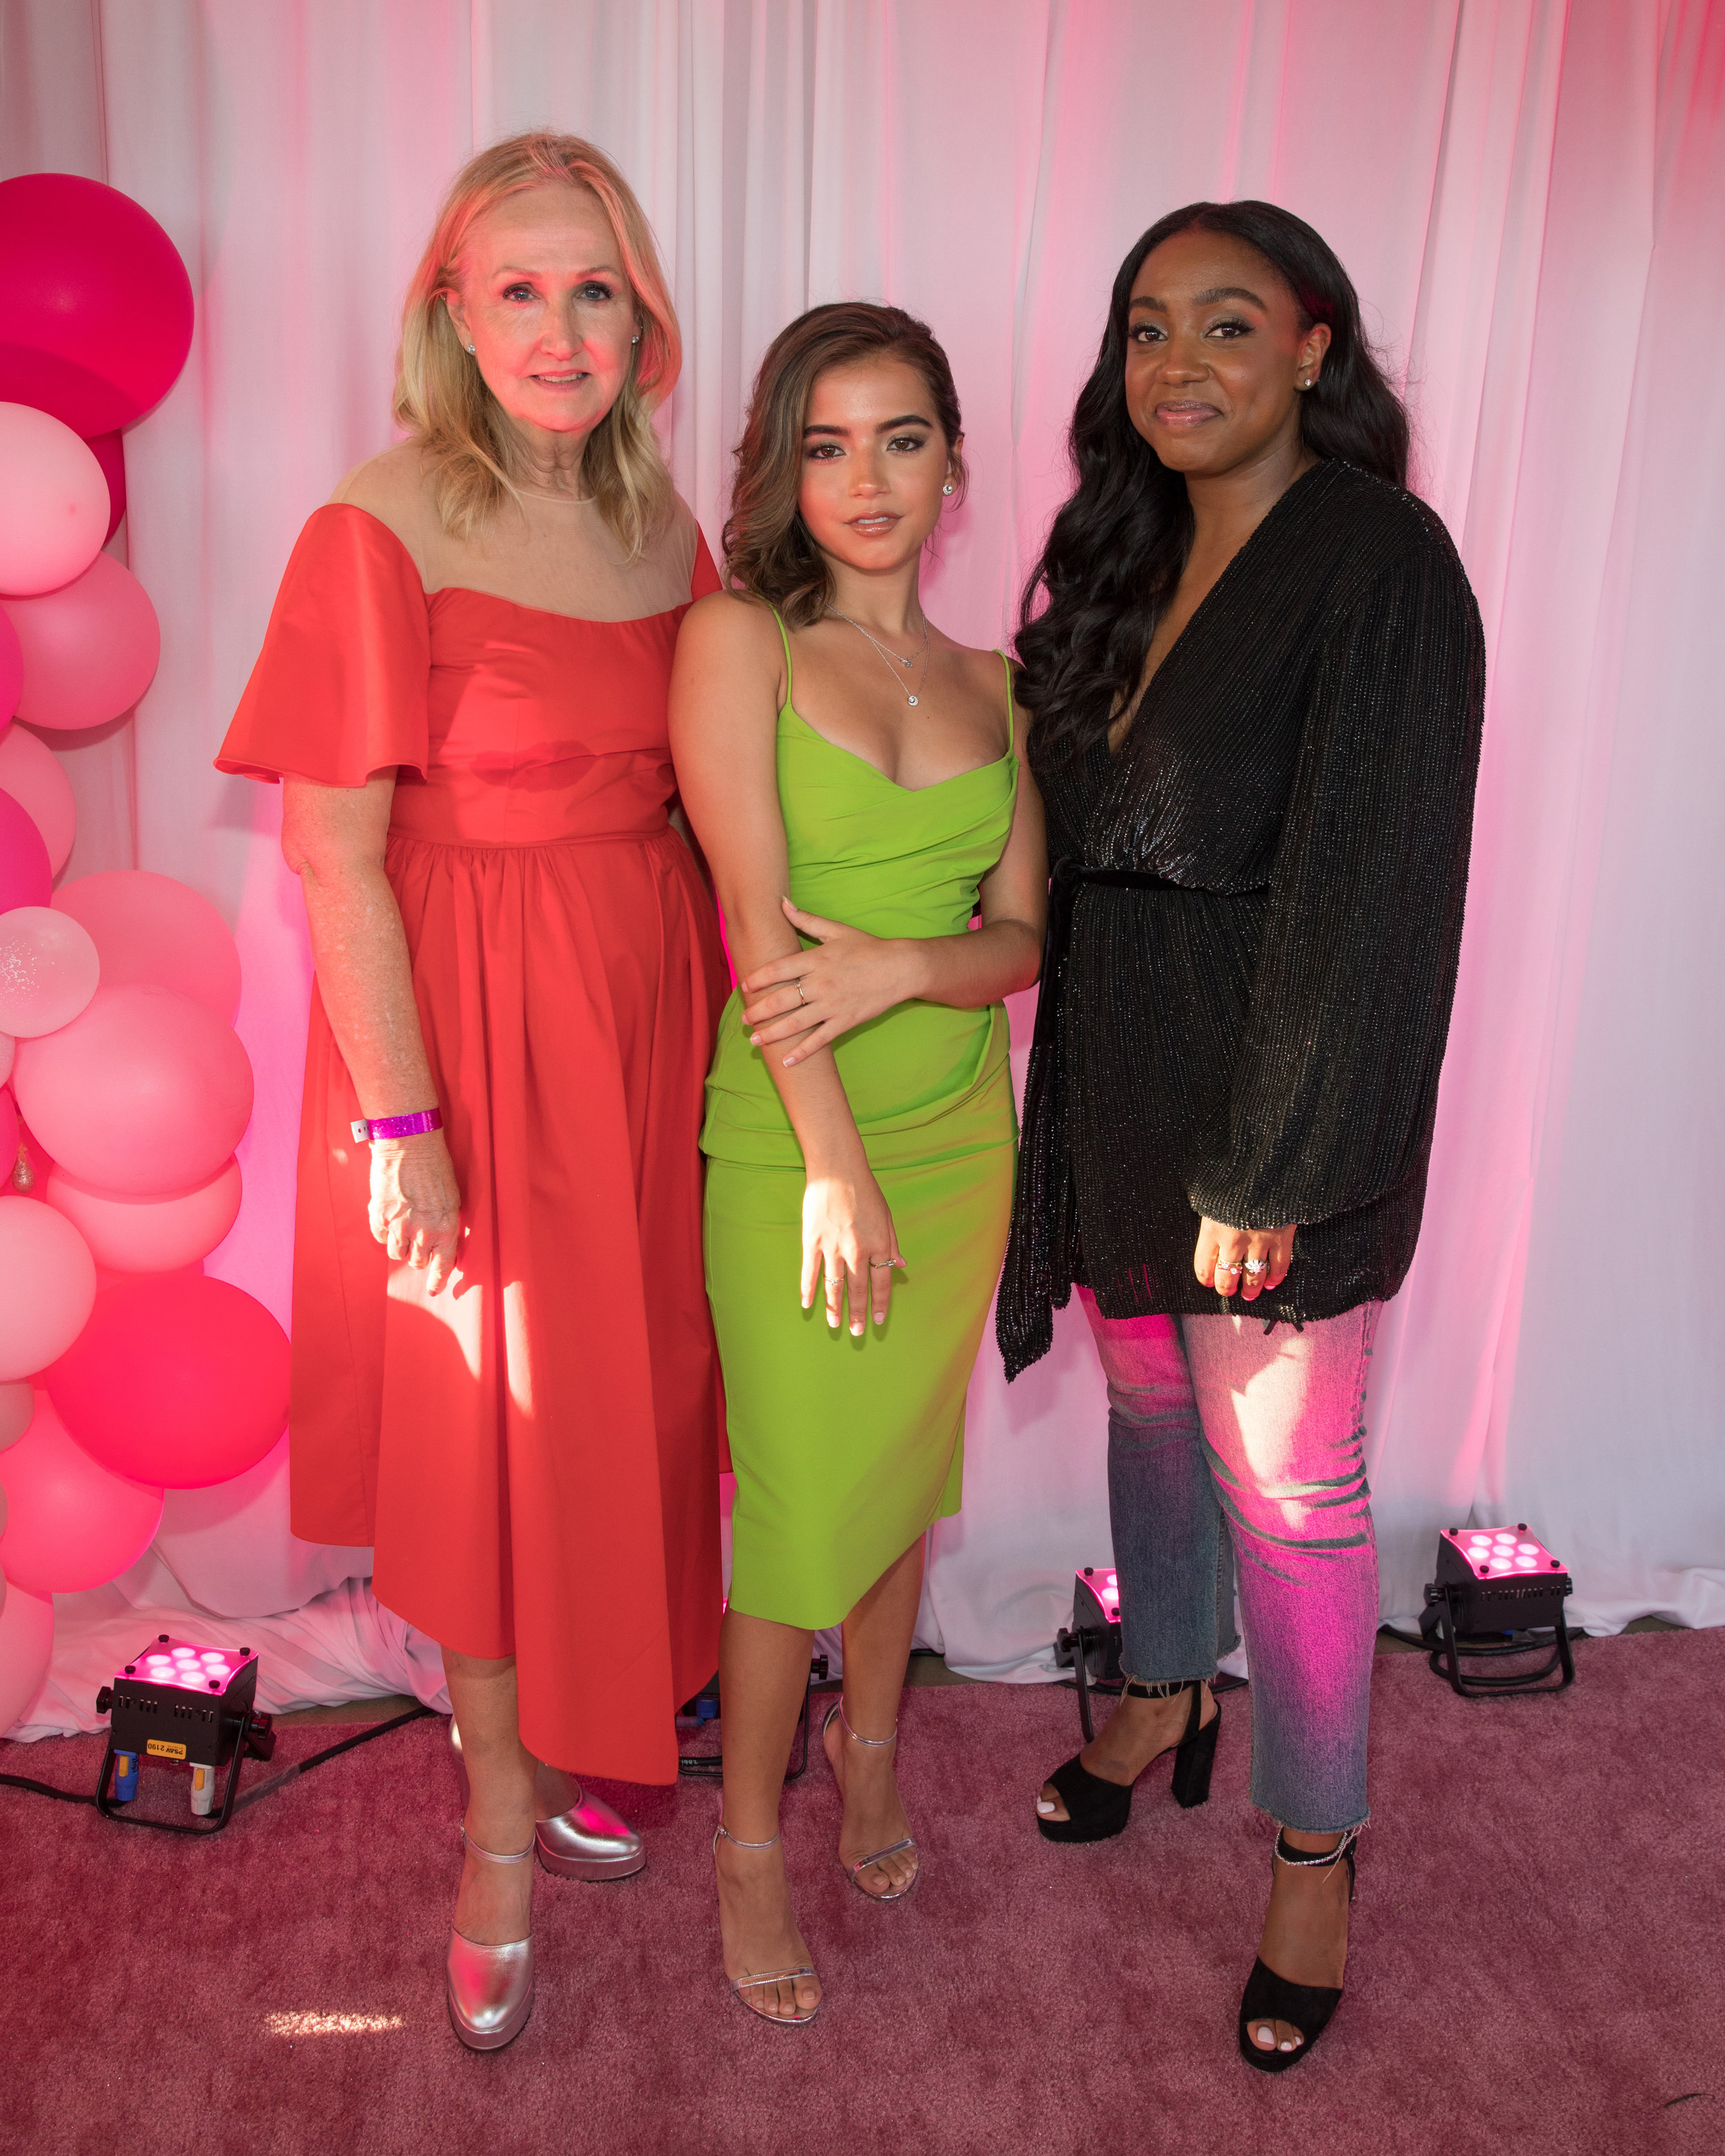 Left to right: Sally Morrison (CMO,  Lightbox Jewelry ); Isablea Moner (actress,  Instant Family ;  Dora and the Lost City of Gold ), Lindsay Peoples Wagner (editor-in-chief,  Teen Vogue )